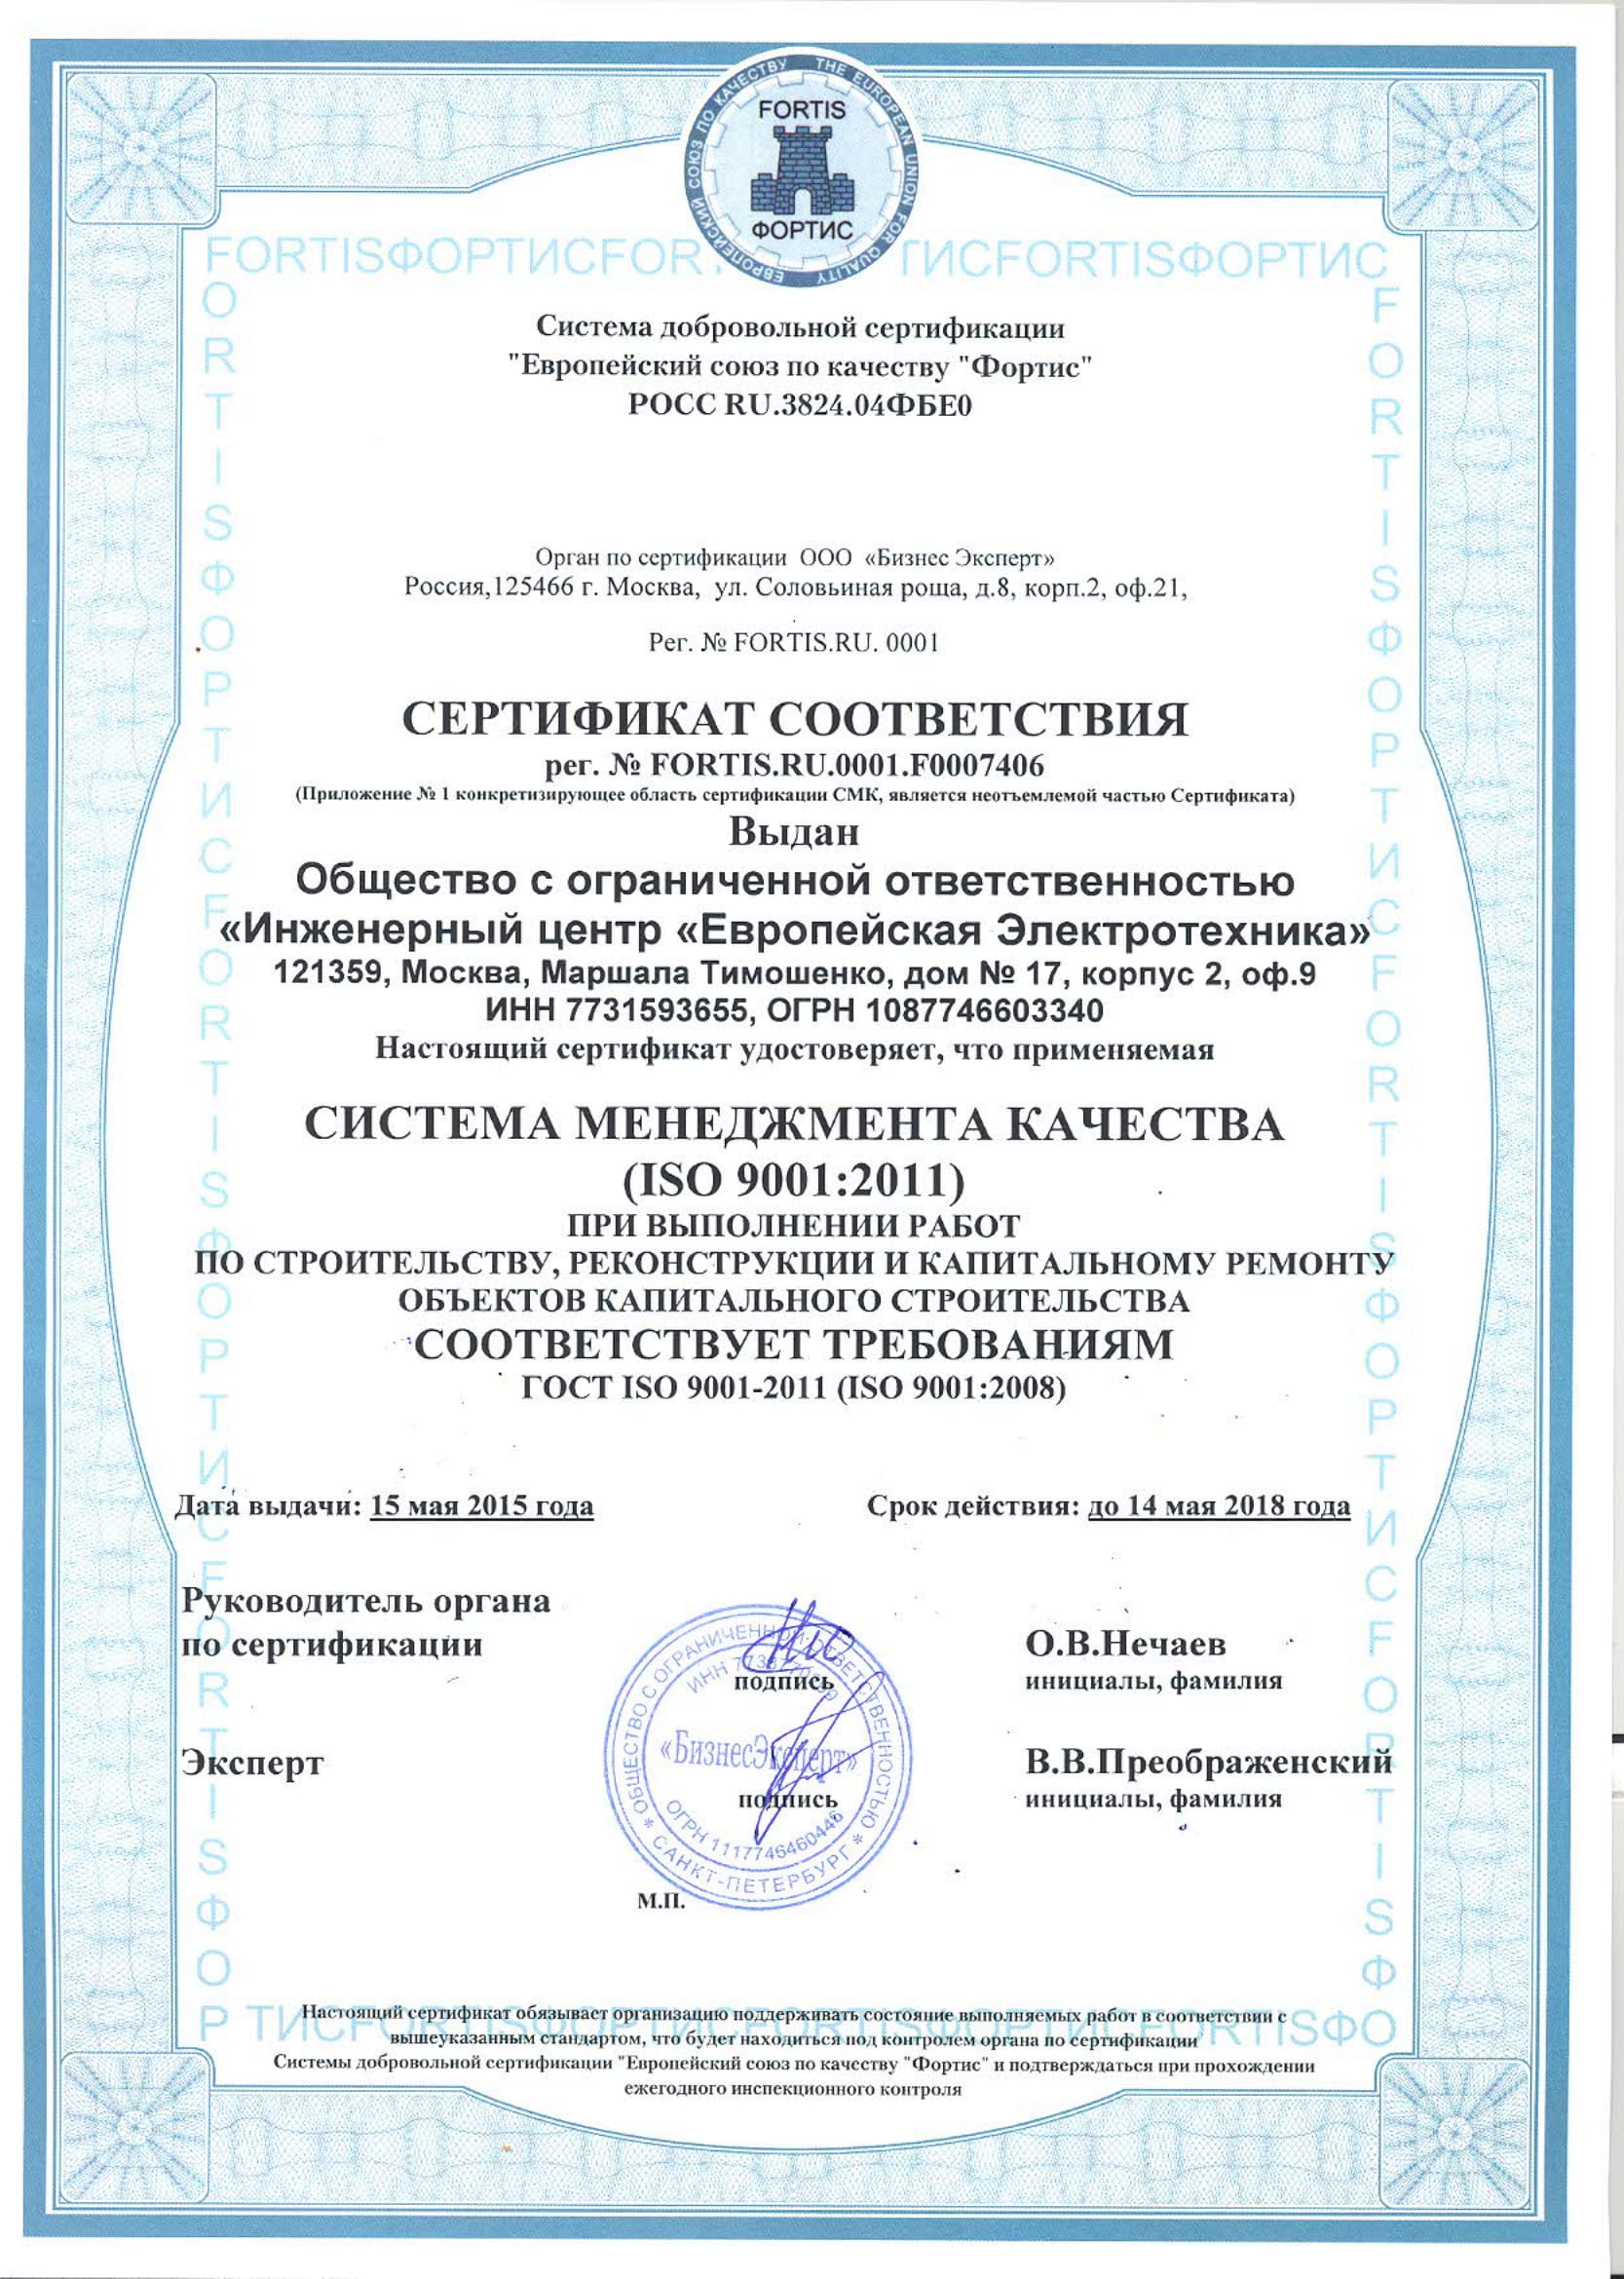 Certificate of Conformity to the Requirements of GOST ISO (Quality Management System)-2